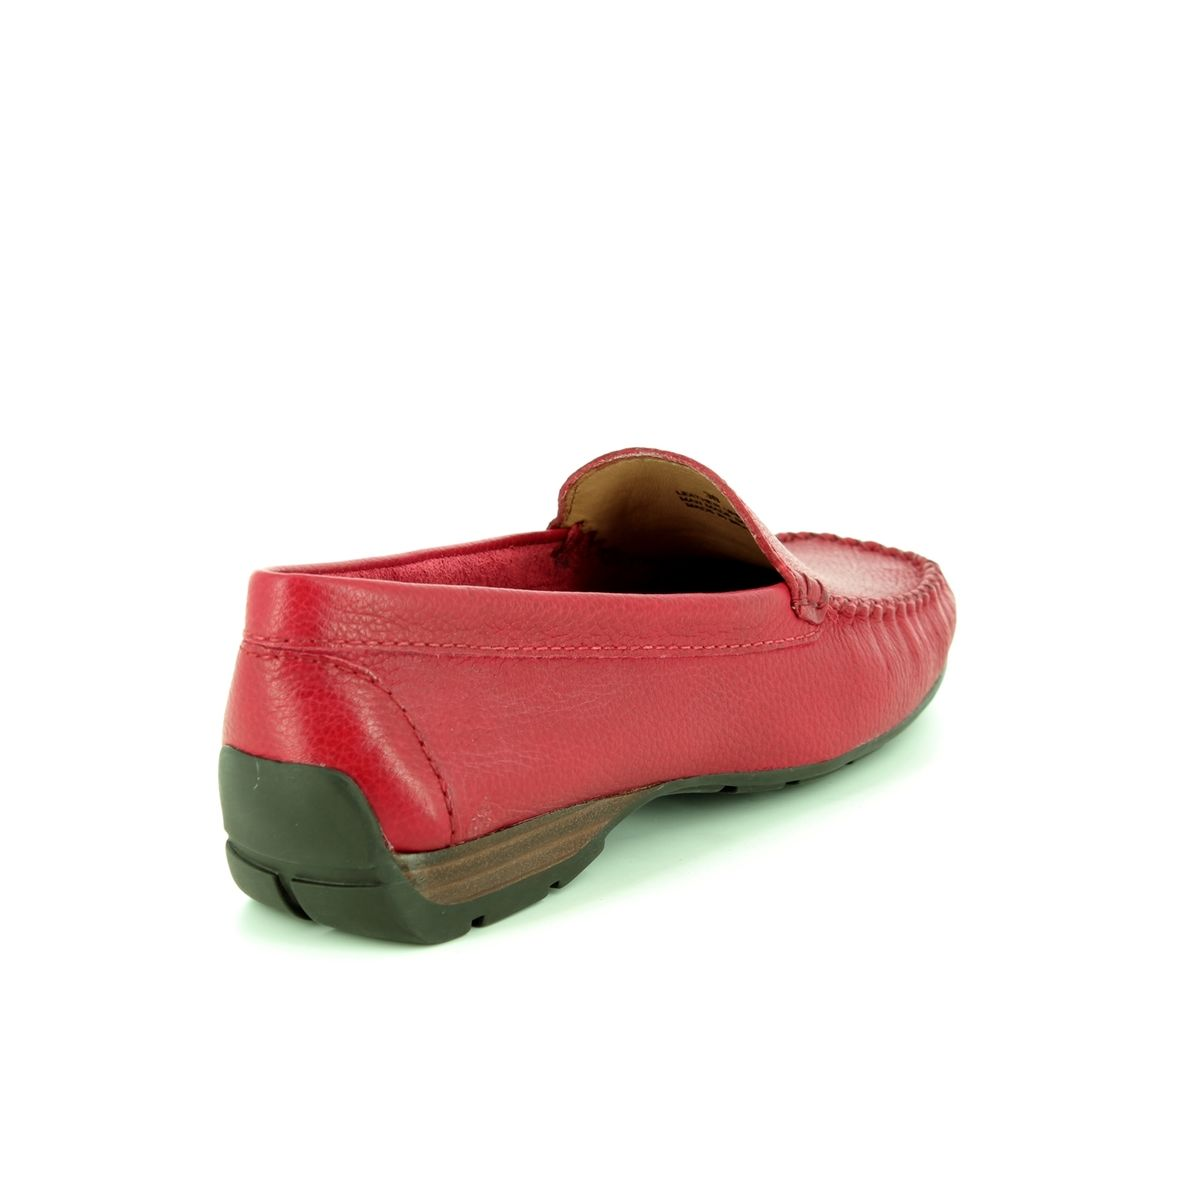 c2ecc903503 Ambition Loafers - Red leather - 40539 80 SUNDAY WIDE FIT